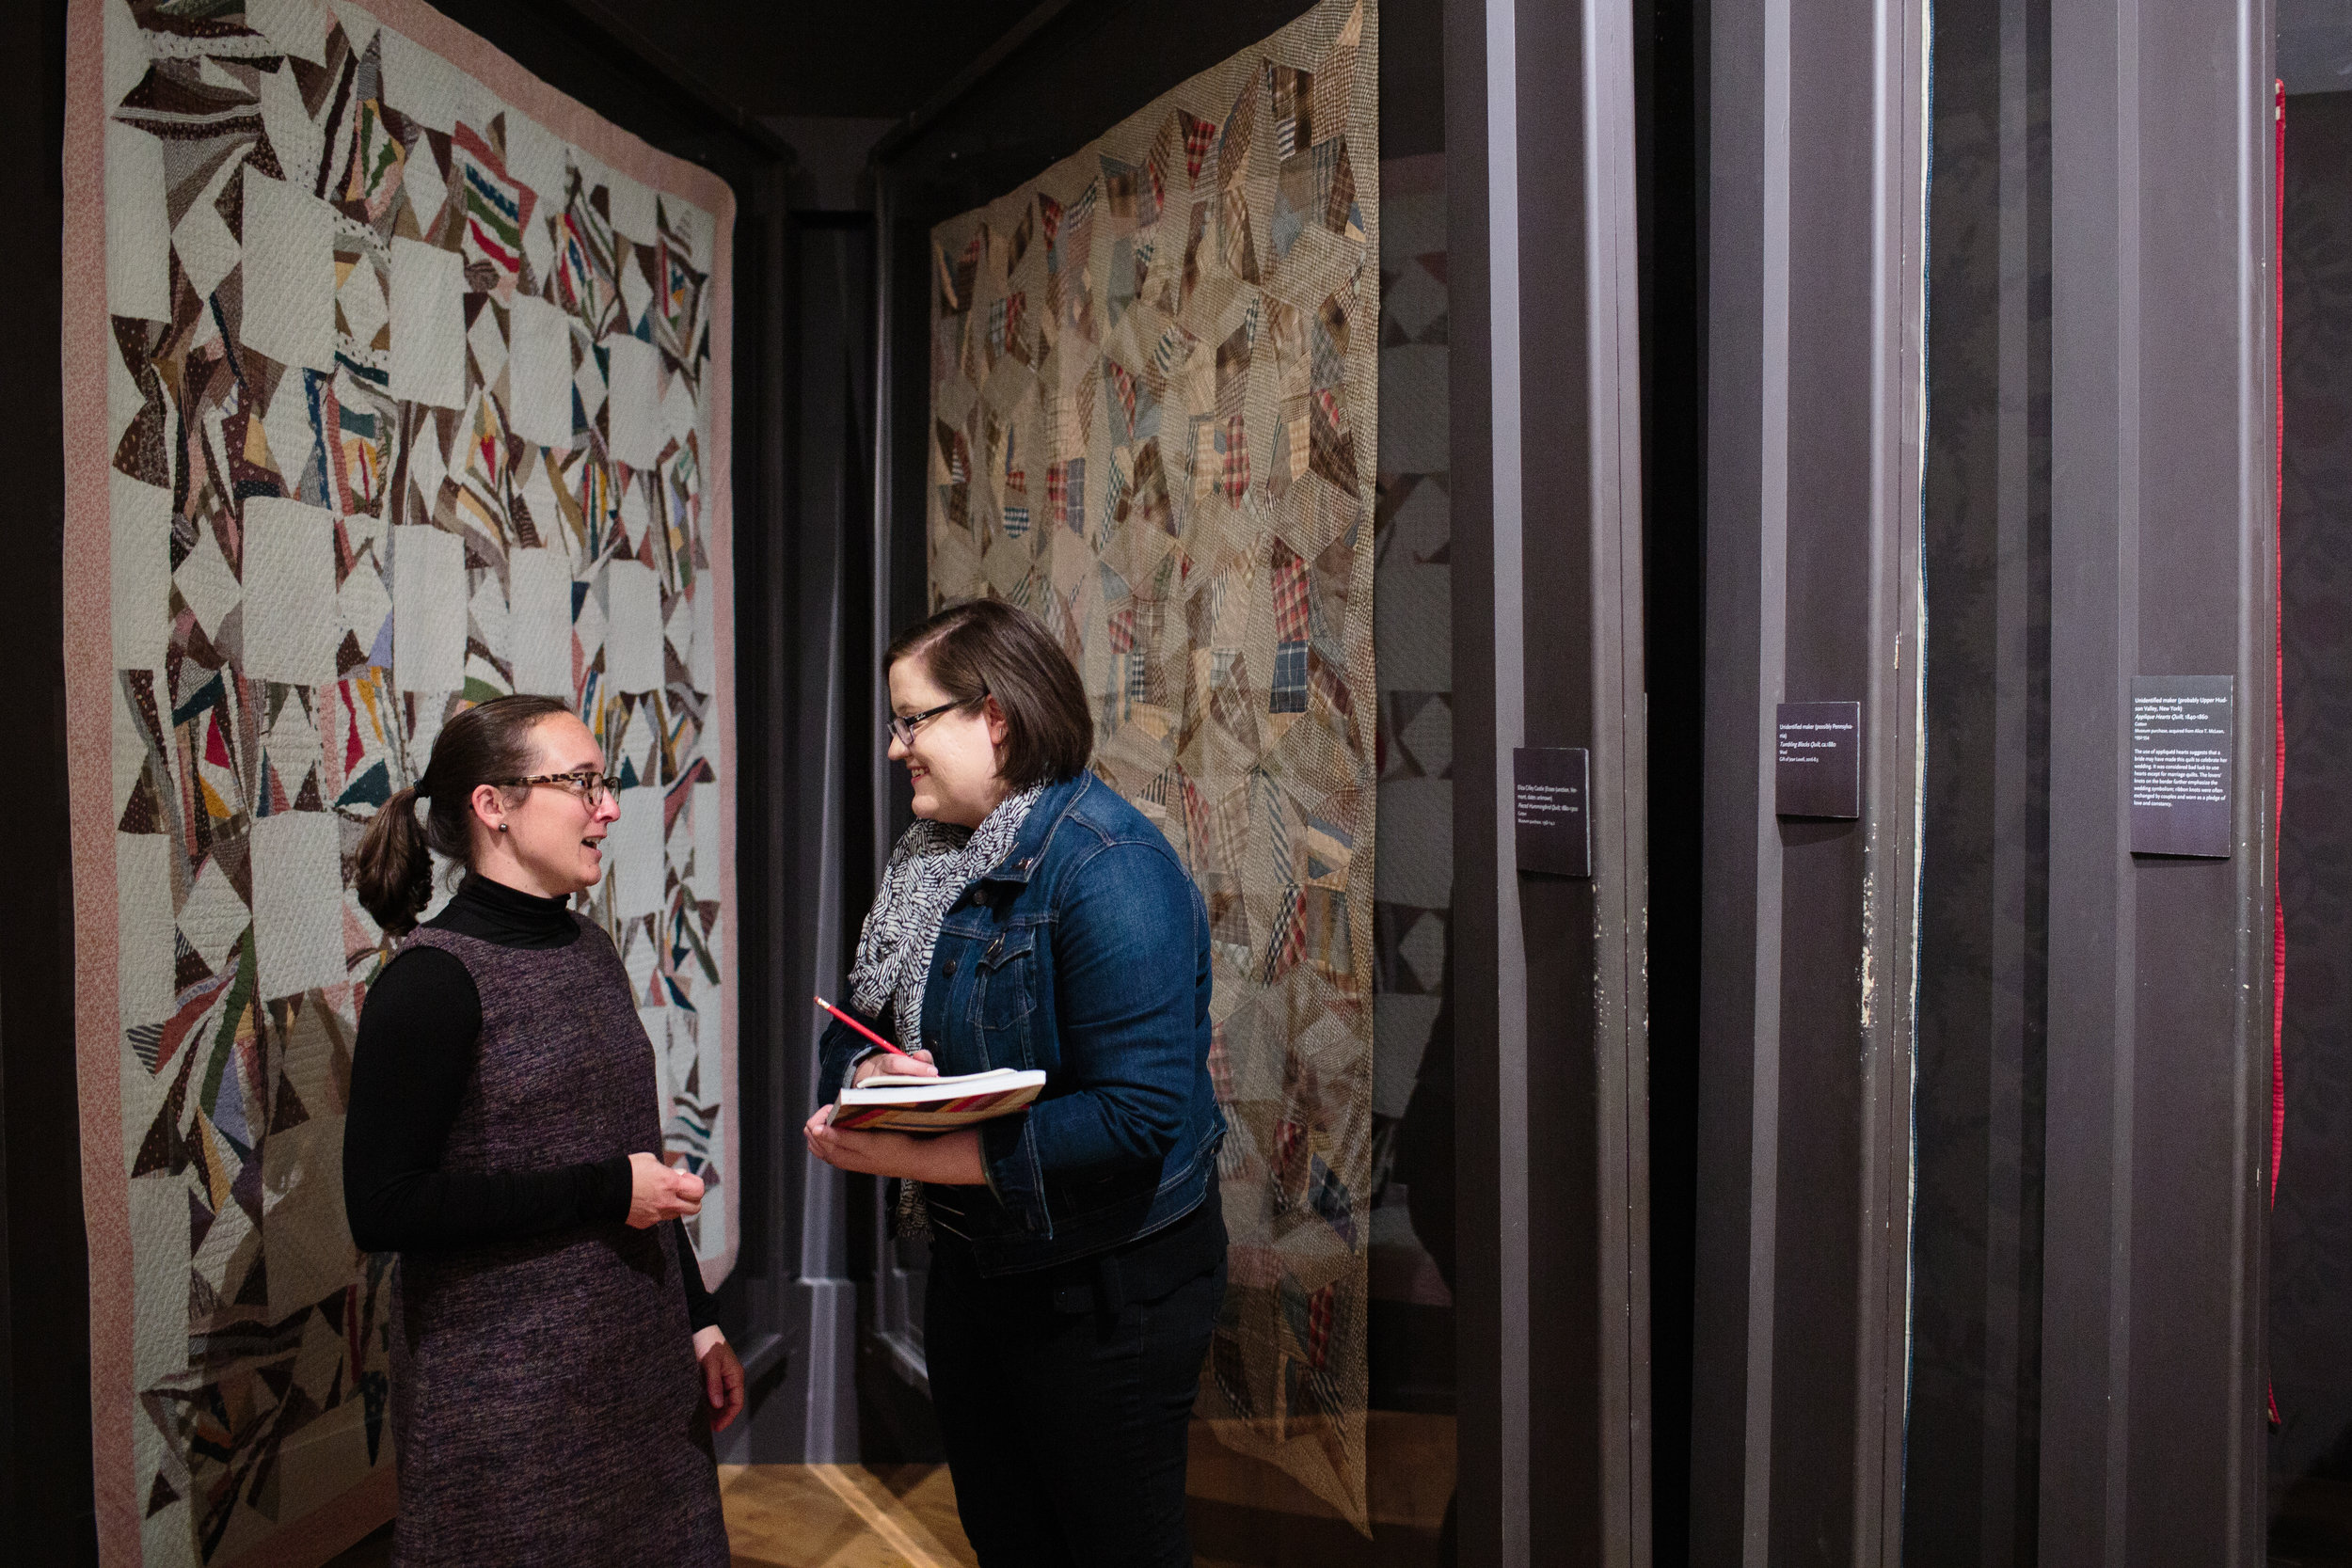 Laura McDowell Hopper interviewing Shelburne Museum Curator Katie Wood Kirchhoff, 2018. Photo by Azuree Wiitala for Quiltfolk magazine.